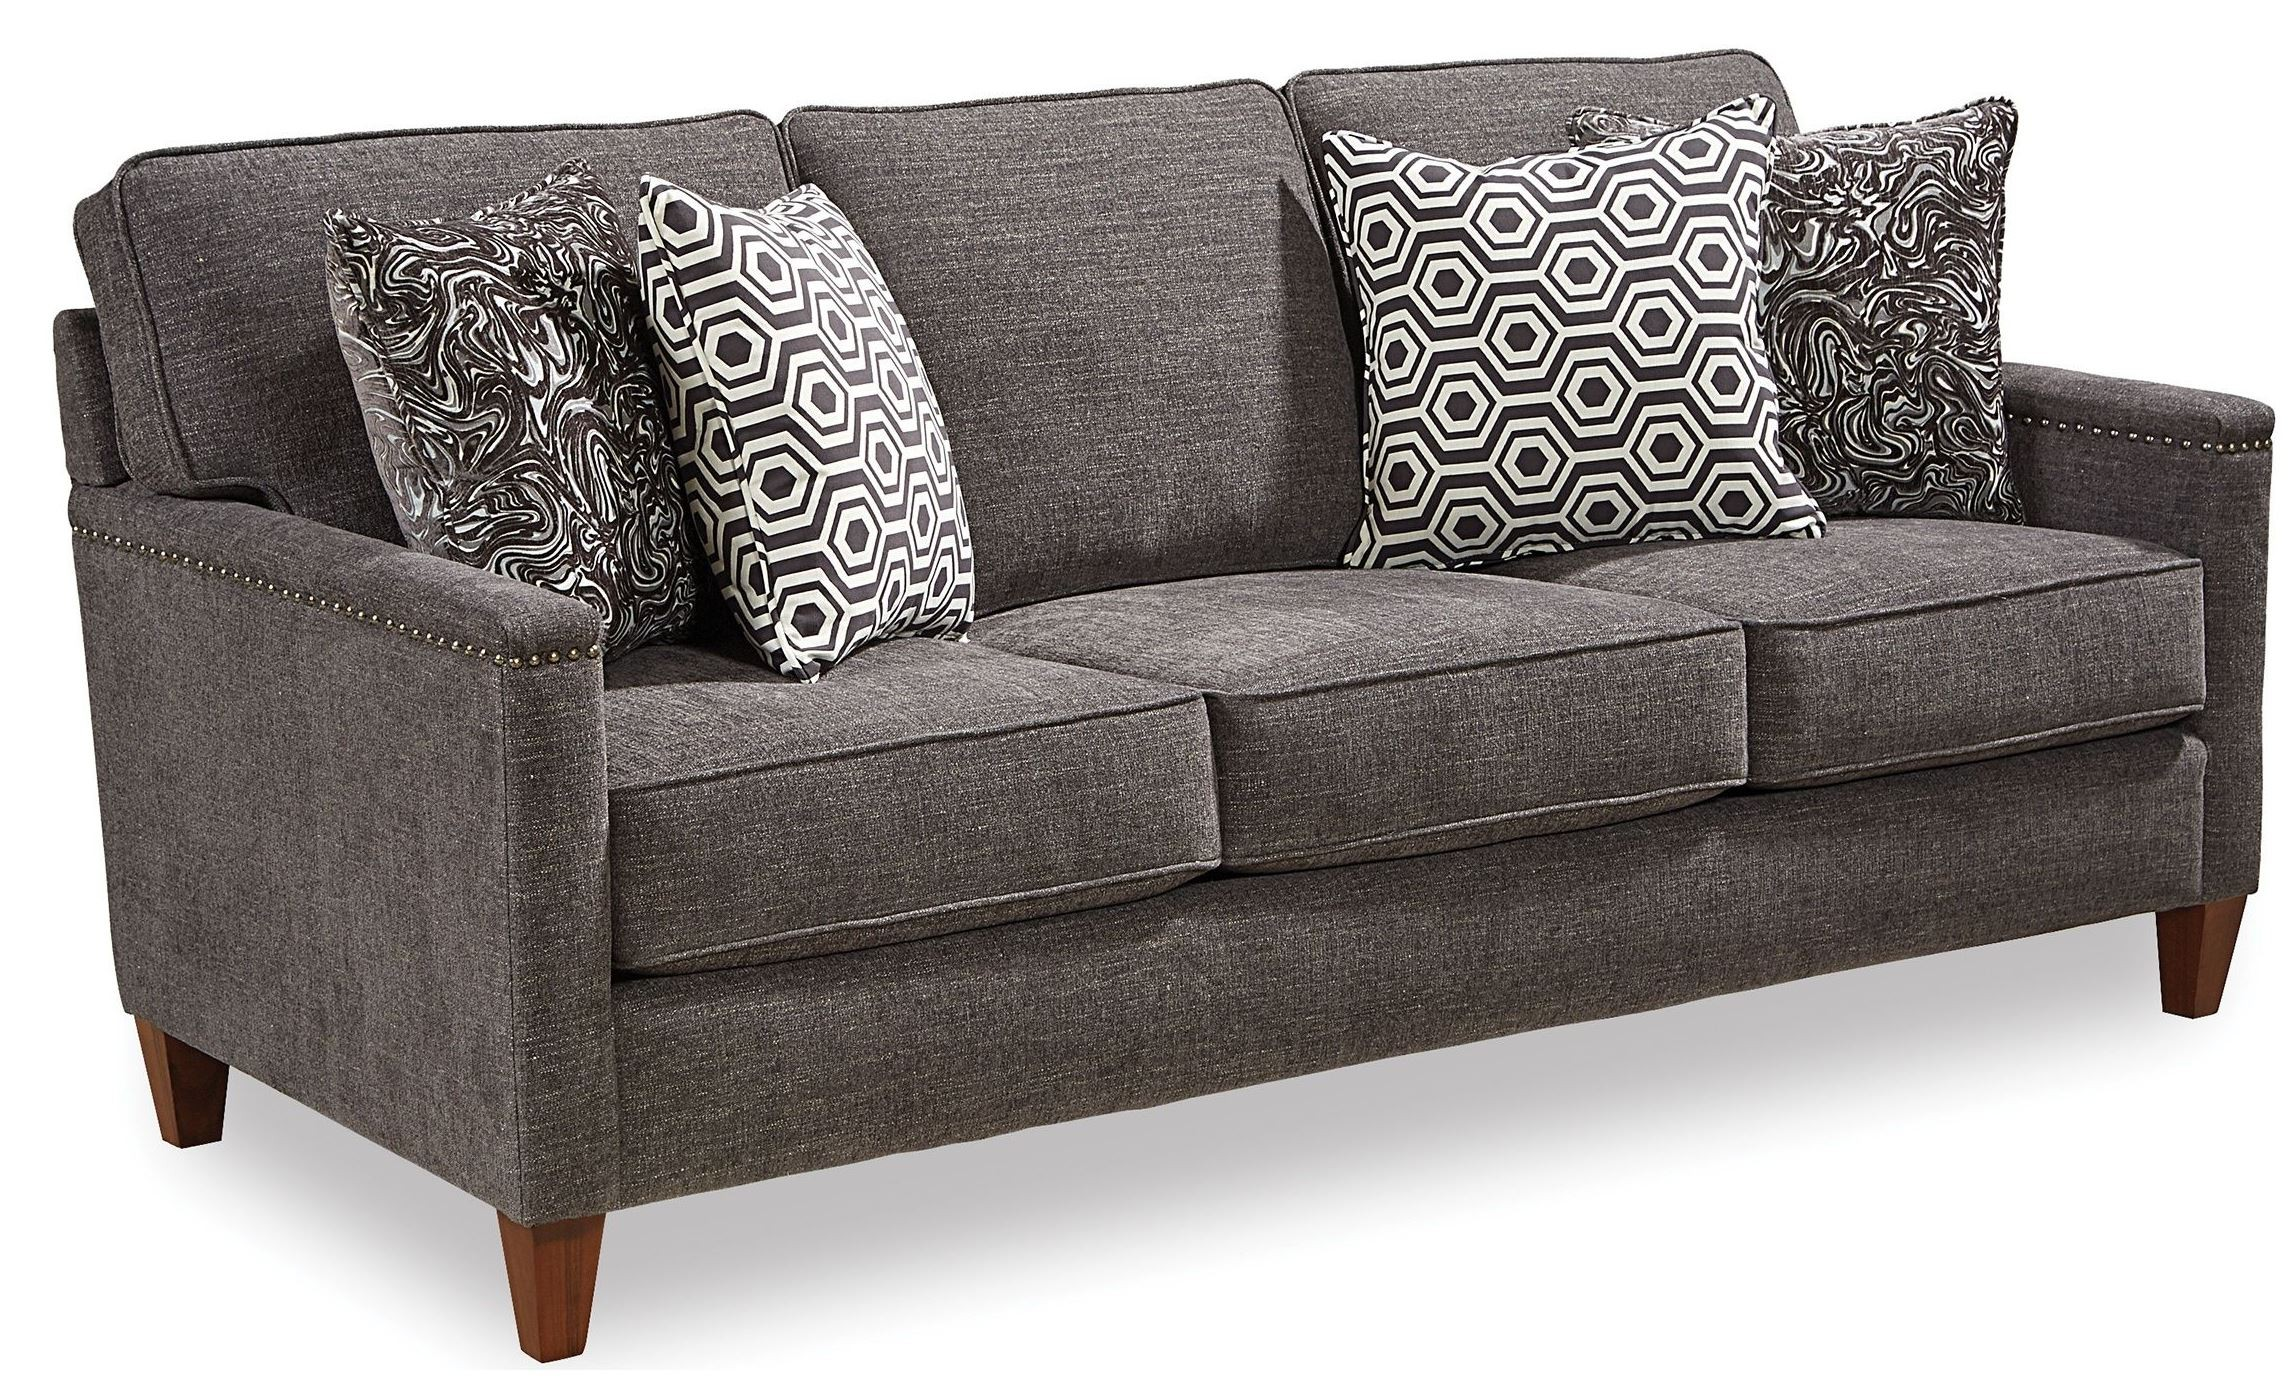 leather sofa sale raleigh nc ikea queen bed lawson gray fabric 4254 3q broyhill